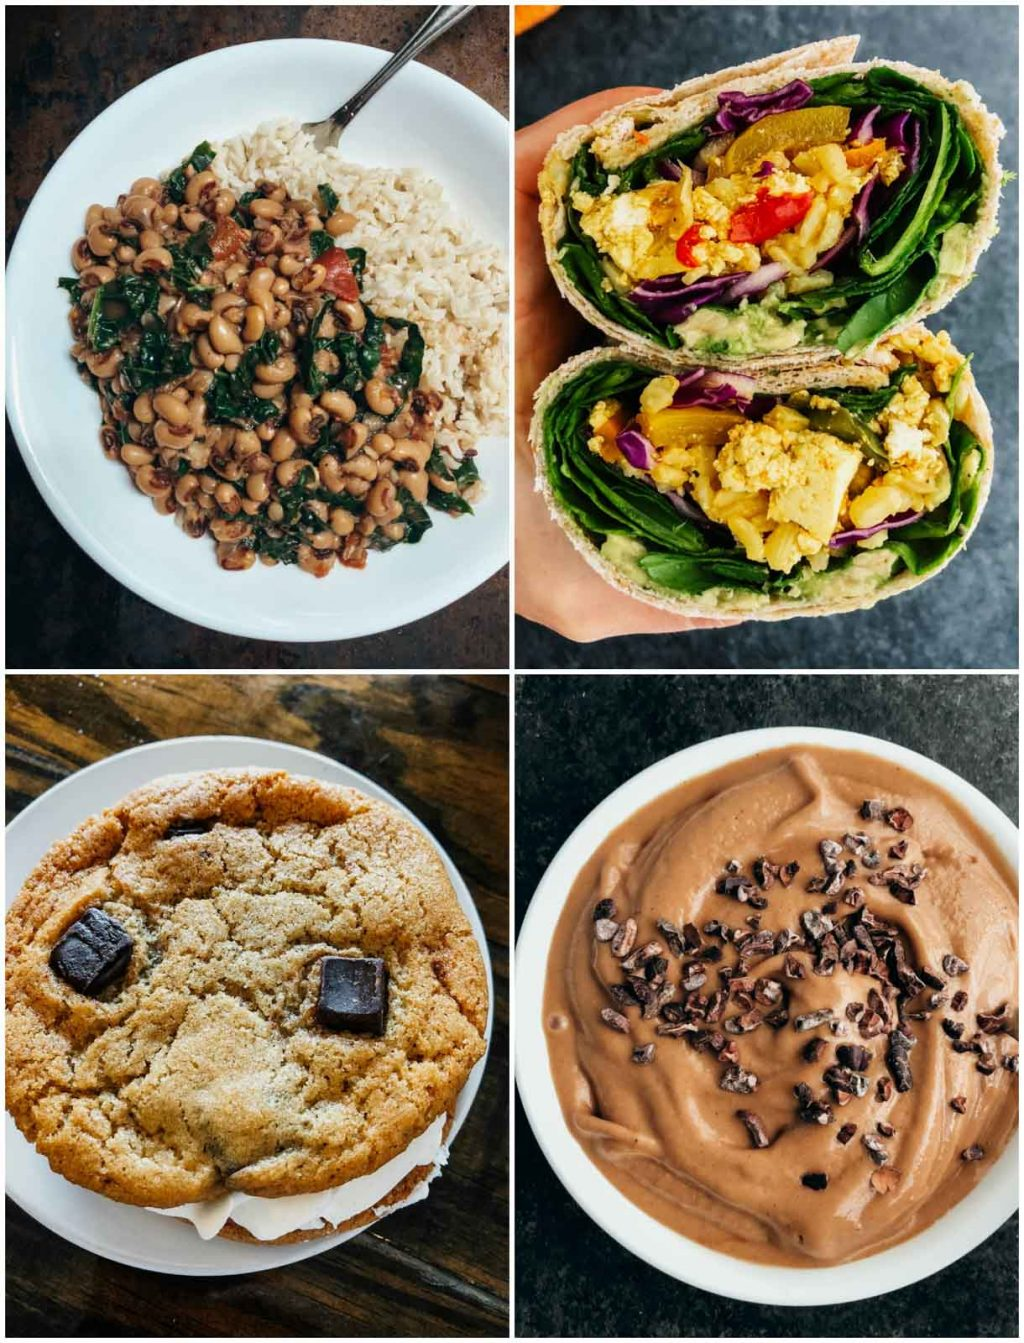 A photo collage showing pictures of delicious vegan food from @Stacey_Homemaker on Instagram.